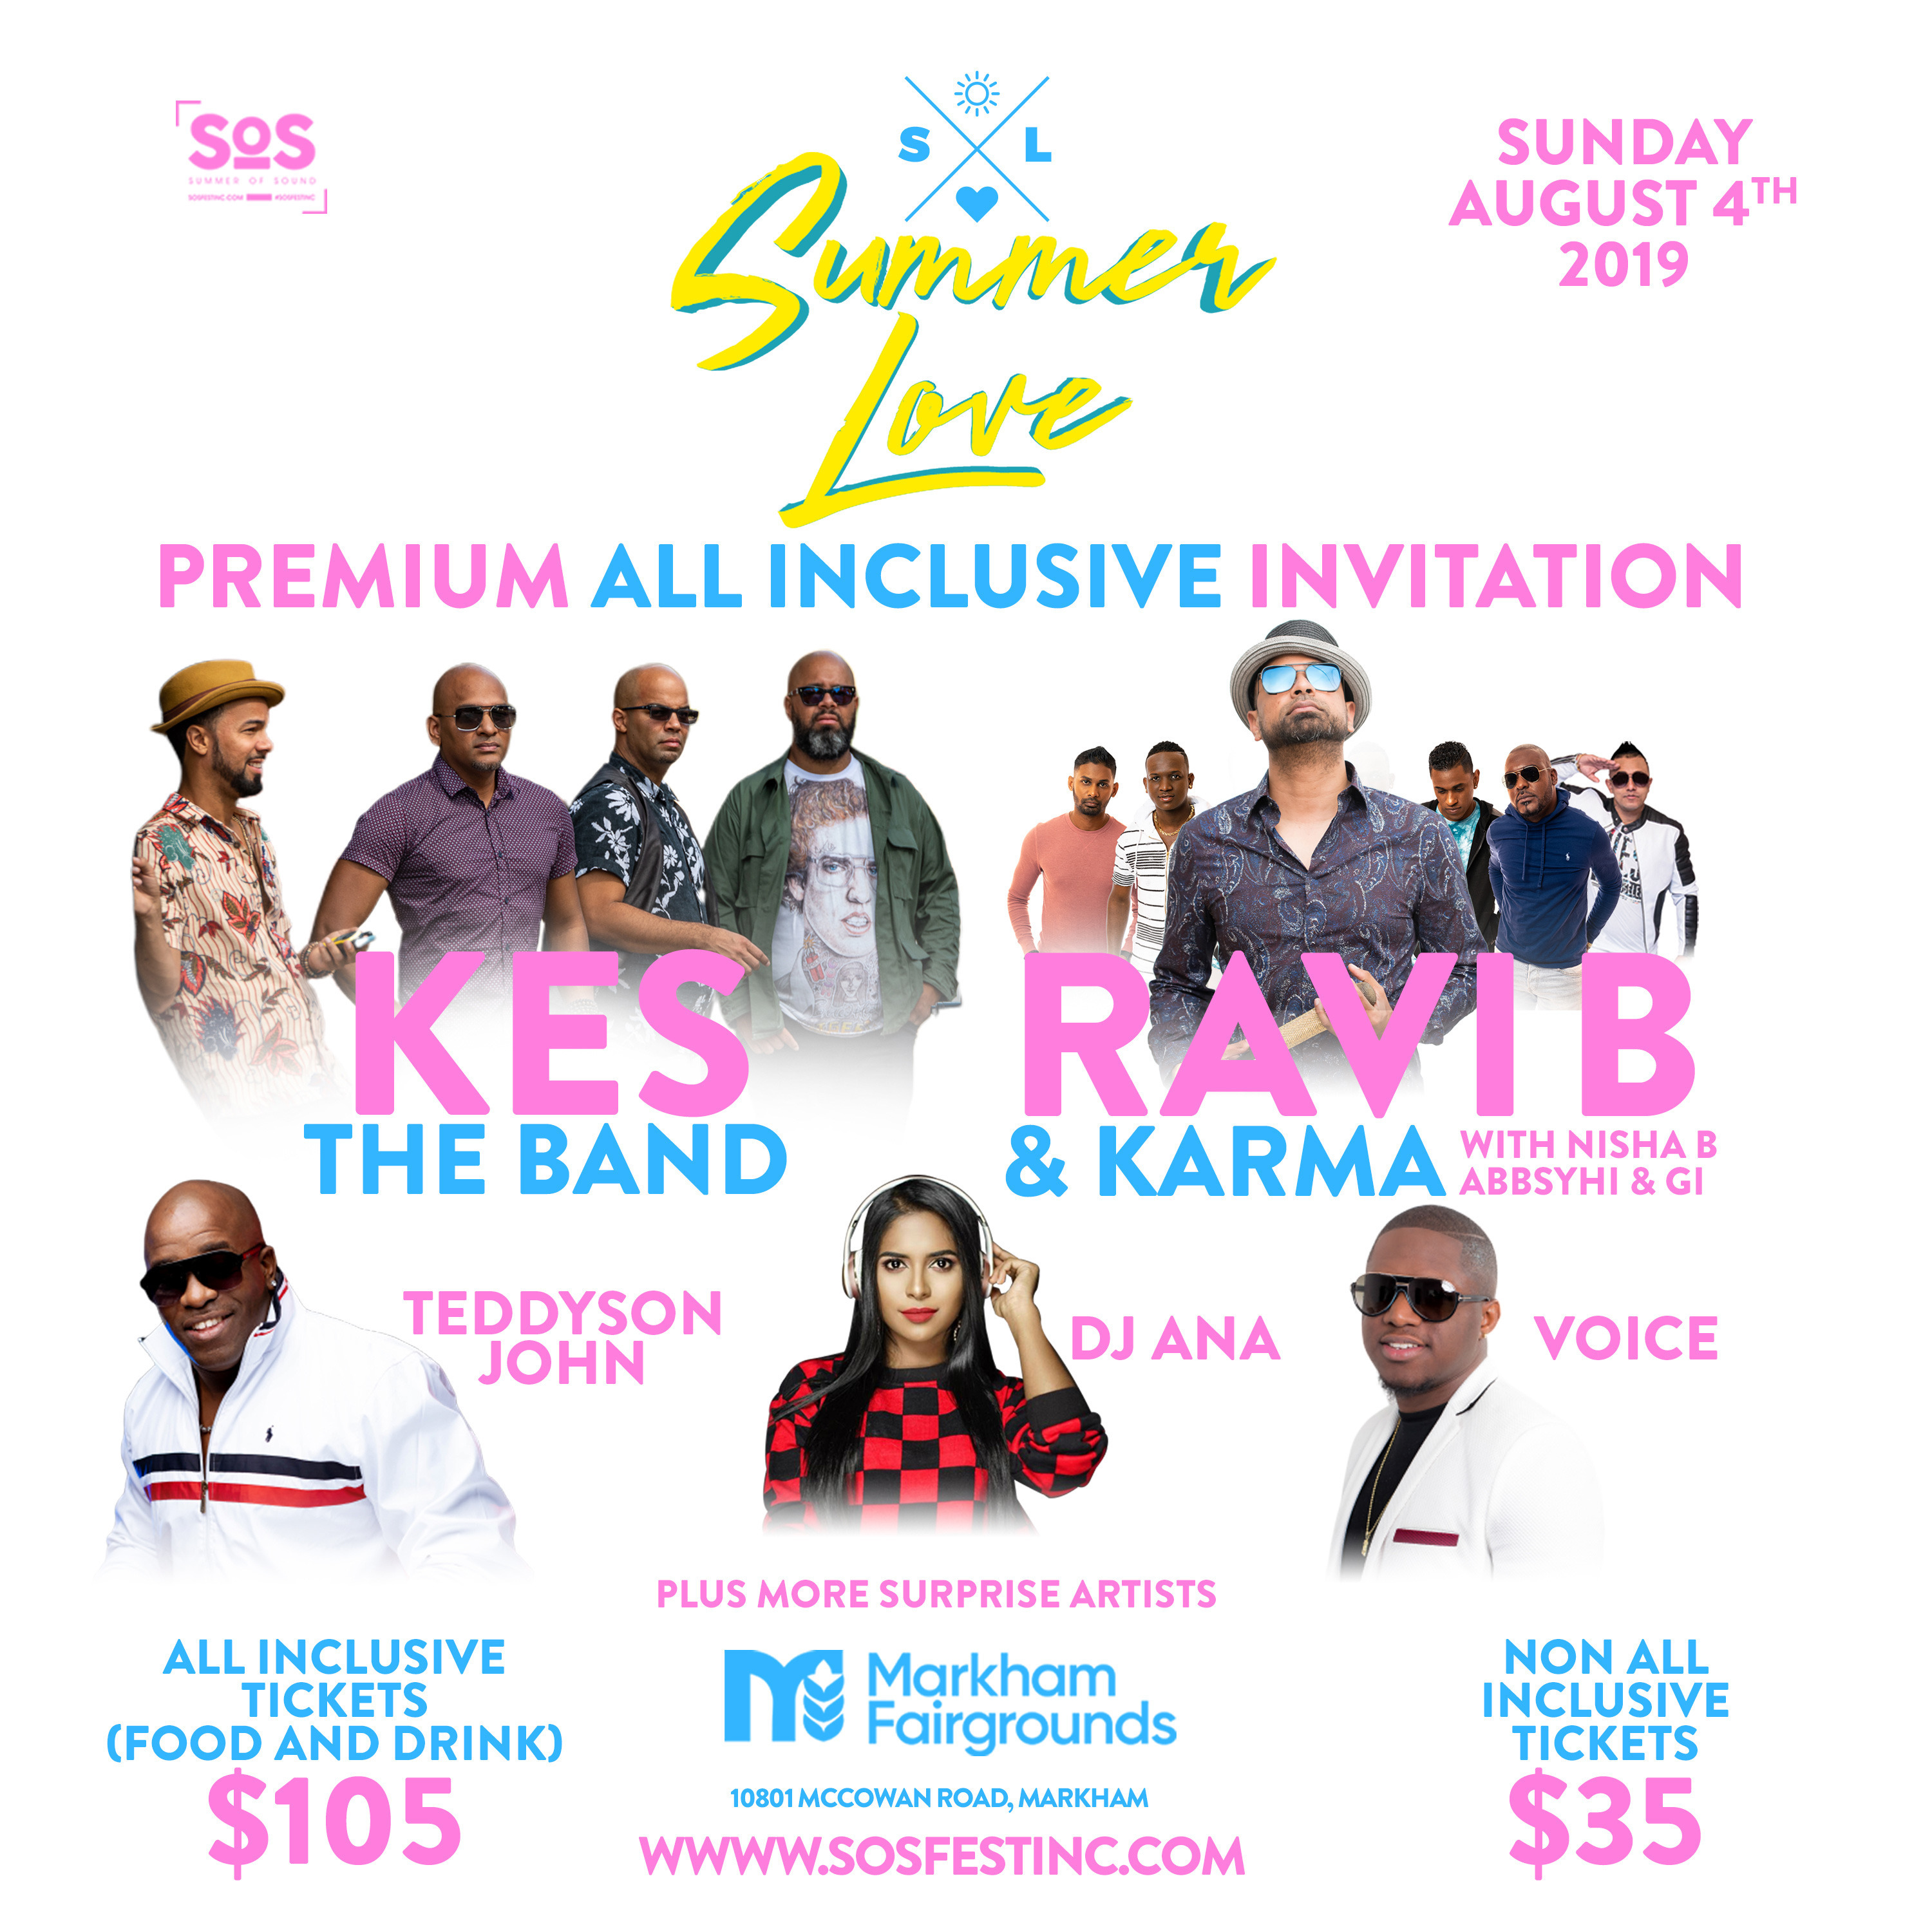 SUMMER LOVE | A PREMIUM ALL INCLUSIVE CONCERT EVENT W/ KES THE BAND & MORE